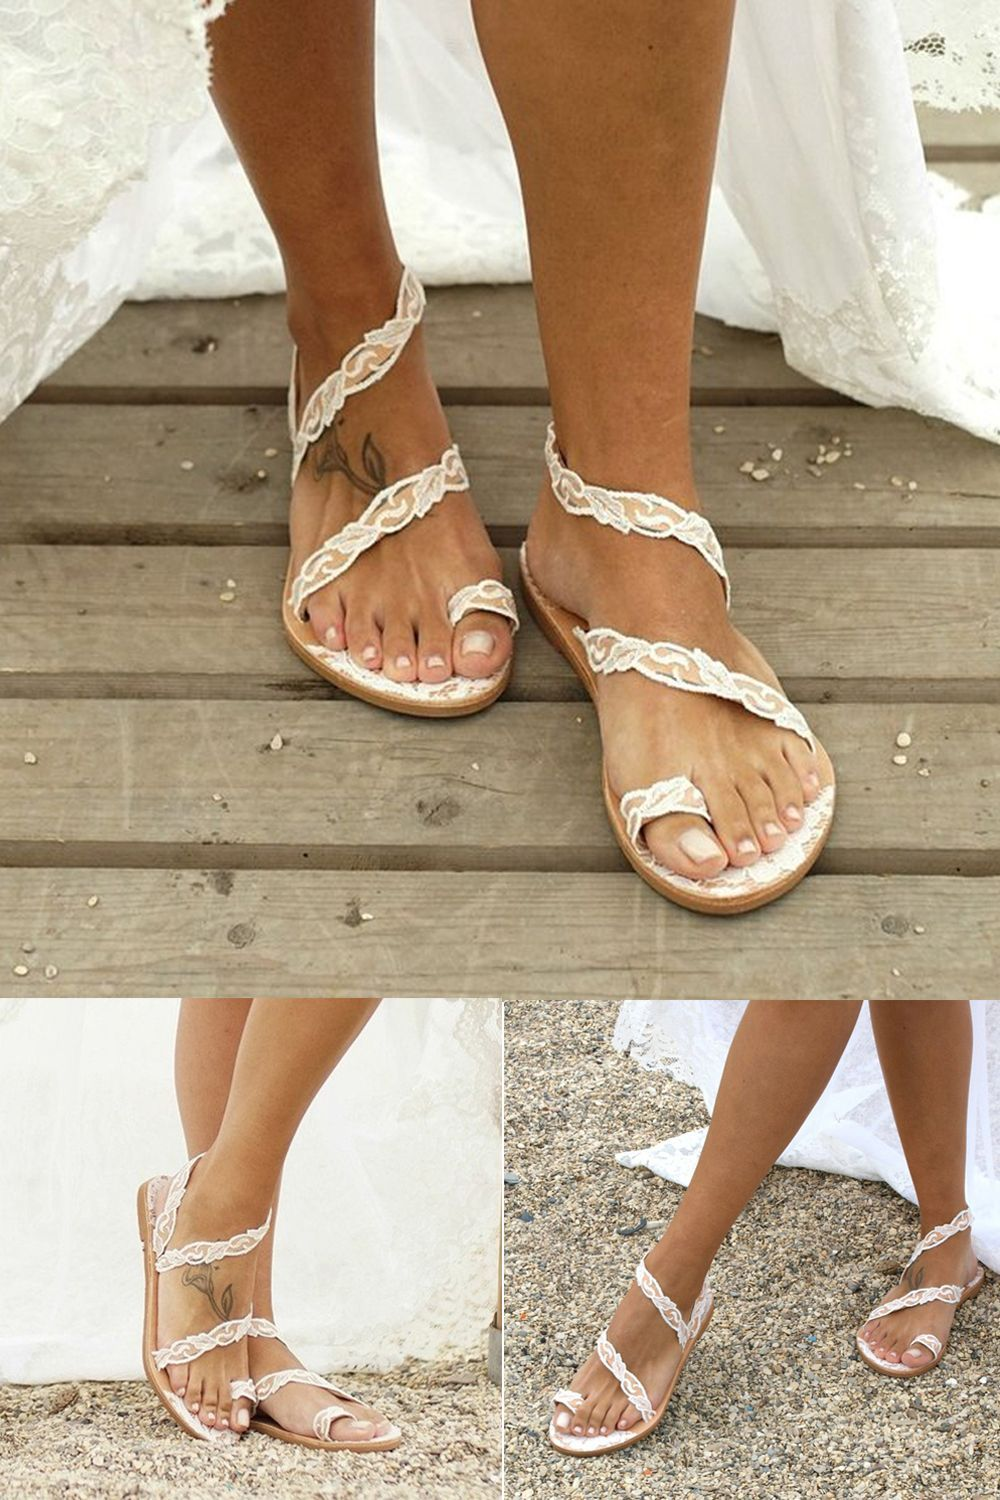 Slip On Toe Ring Wedding Flat Sandals Lace Sandals Lace Sandals Leatrend Flat Sandals Wedding Lace Sandals Wedding Shoes